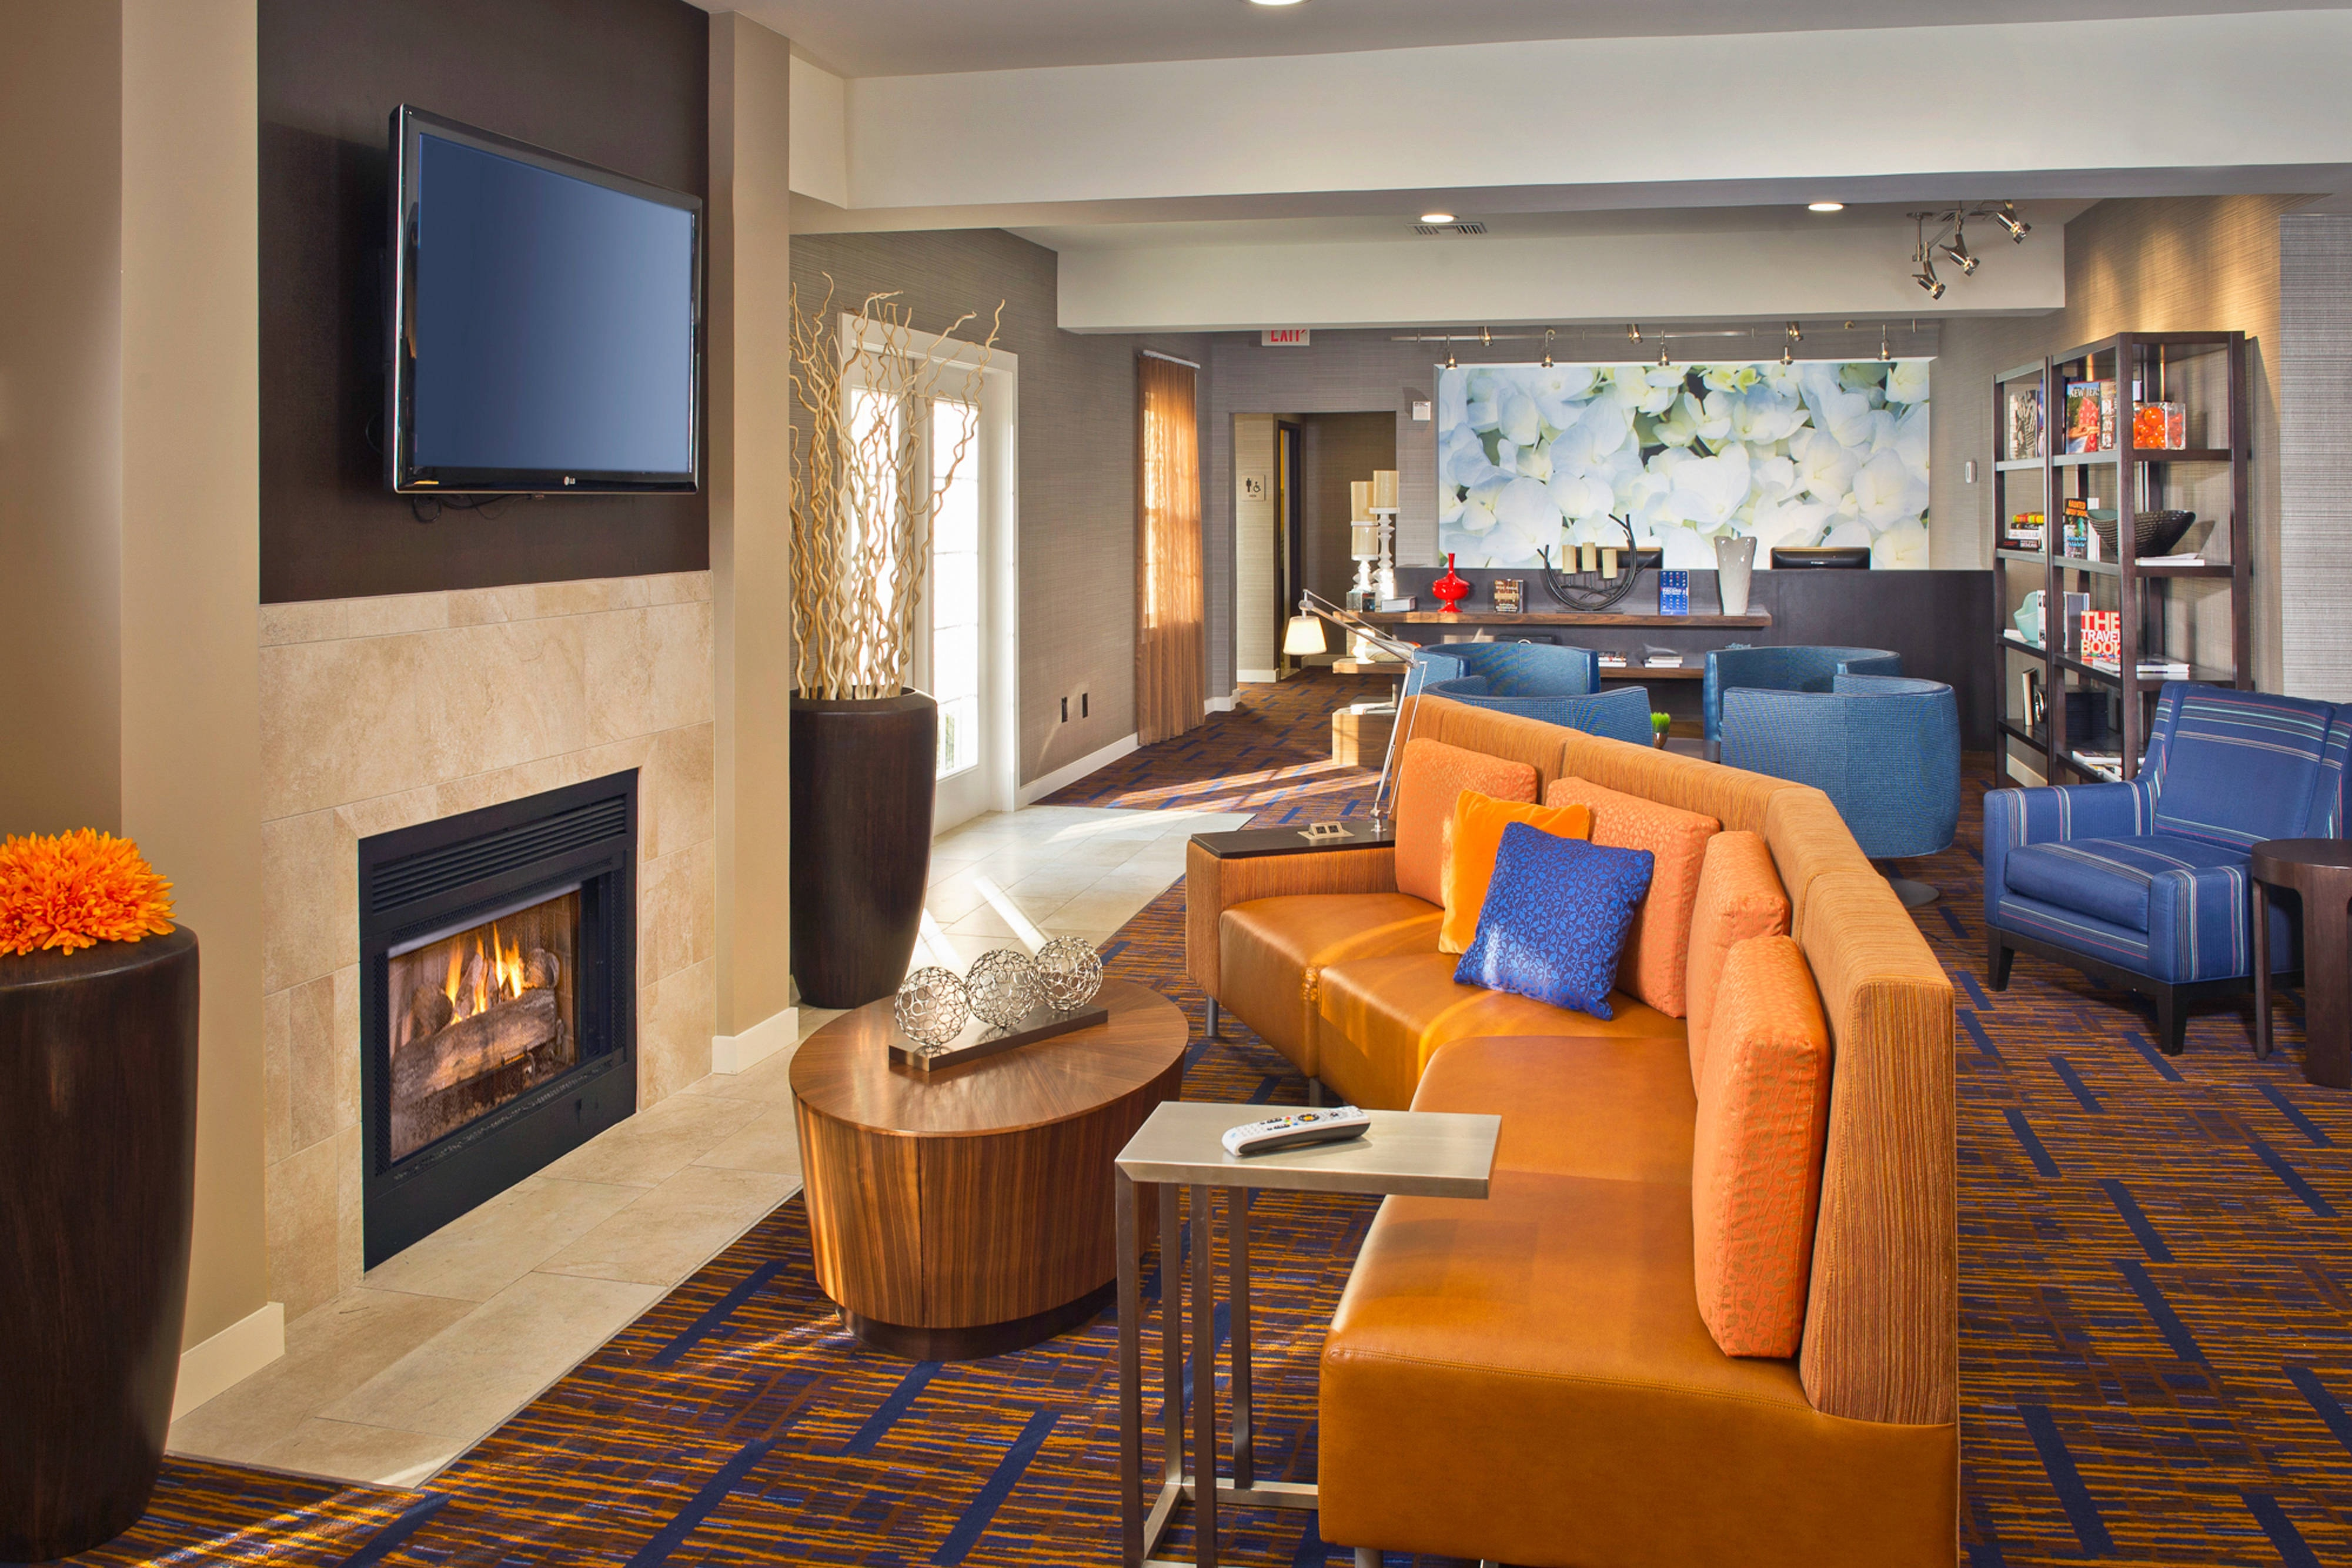 Fireplace Lobby Seating